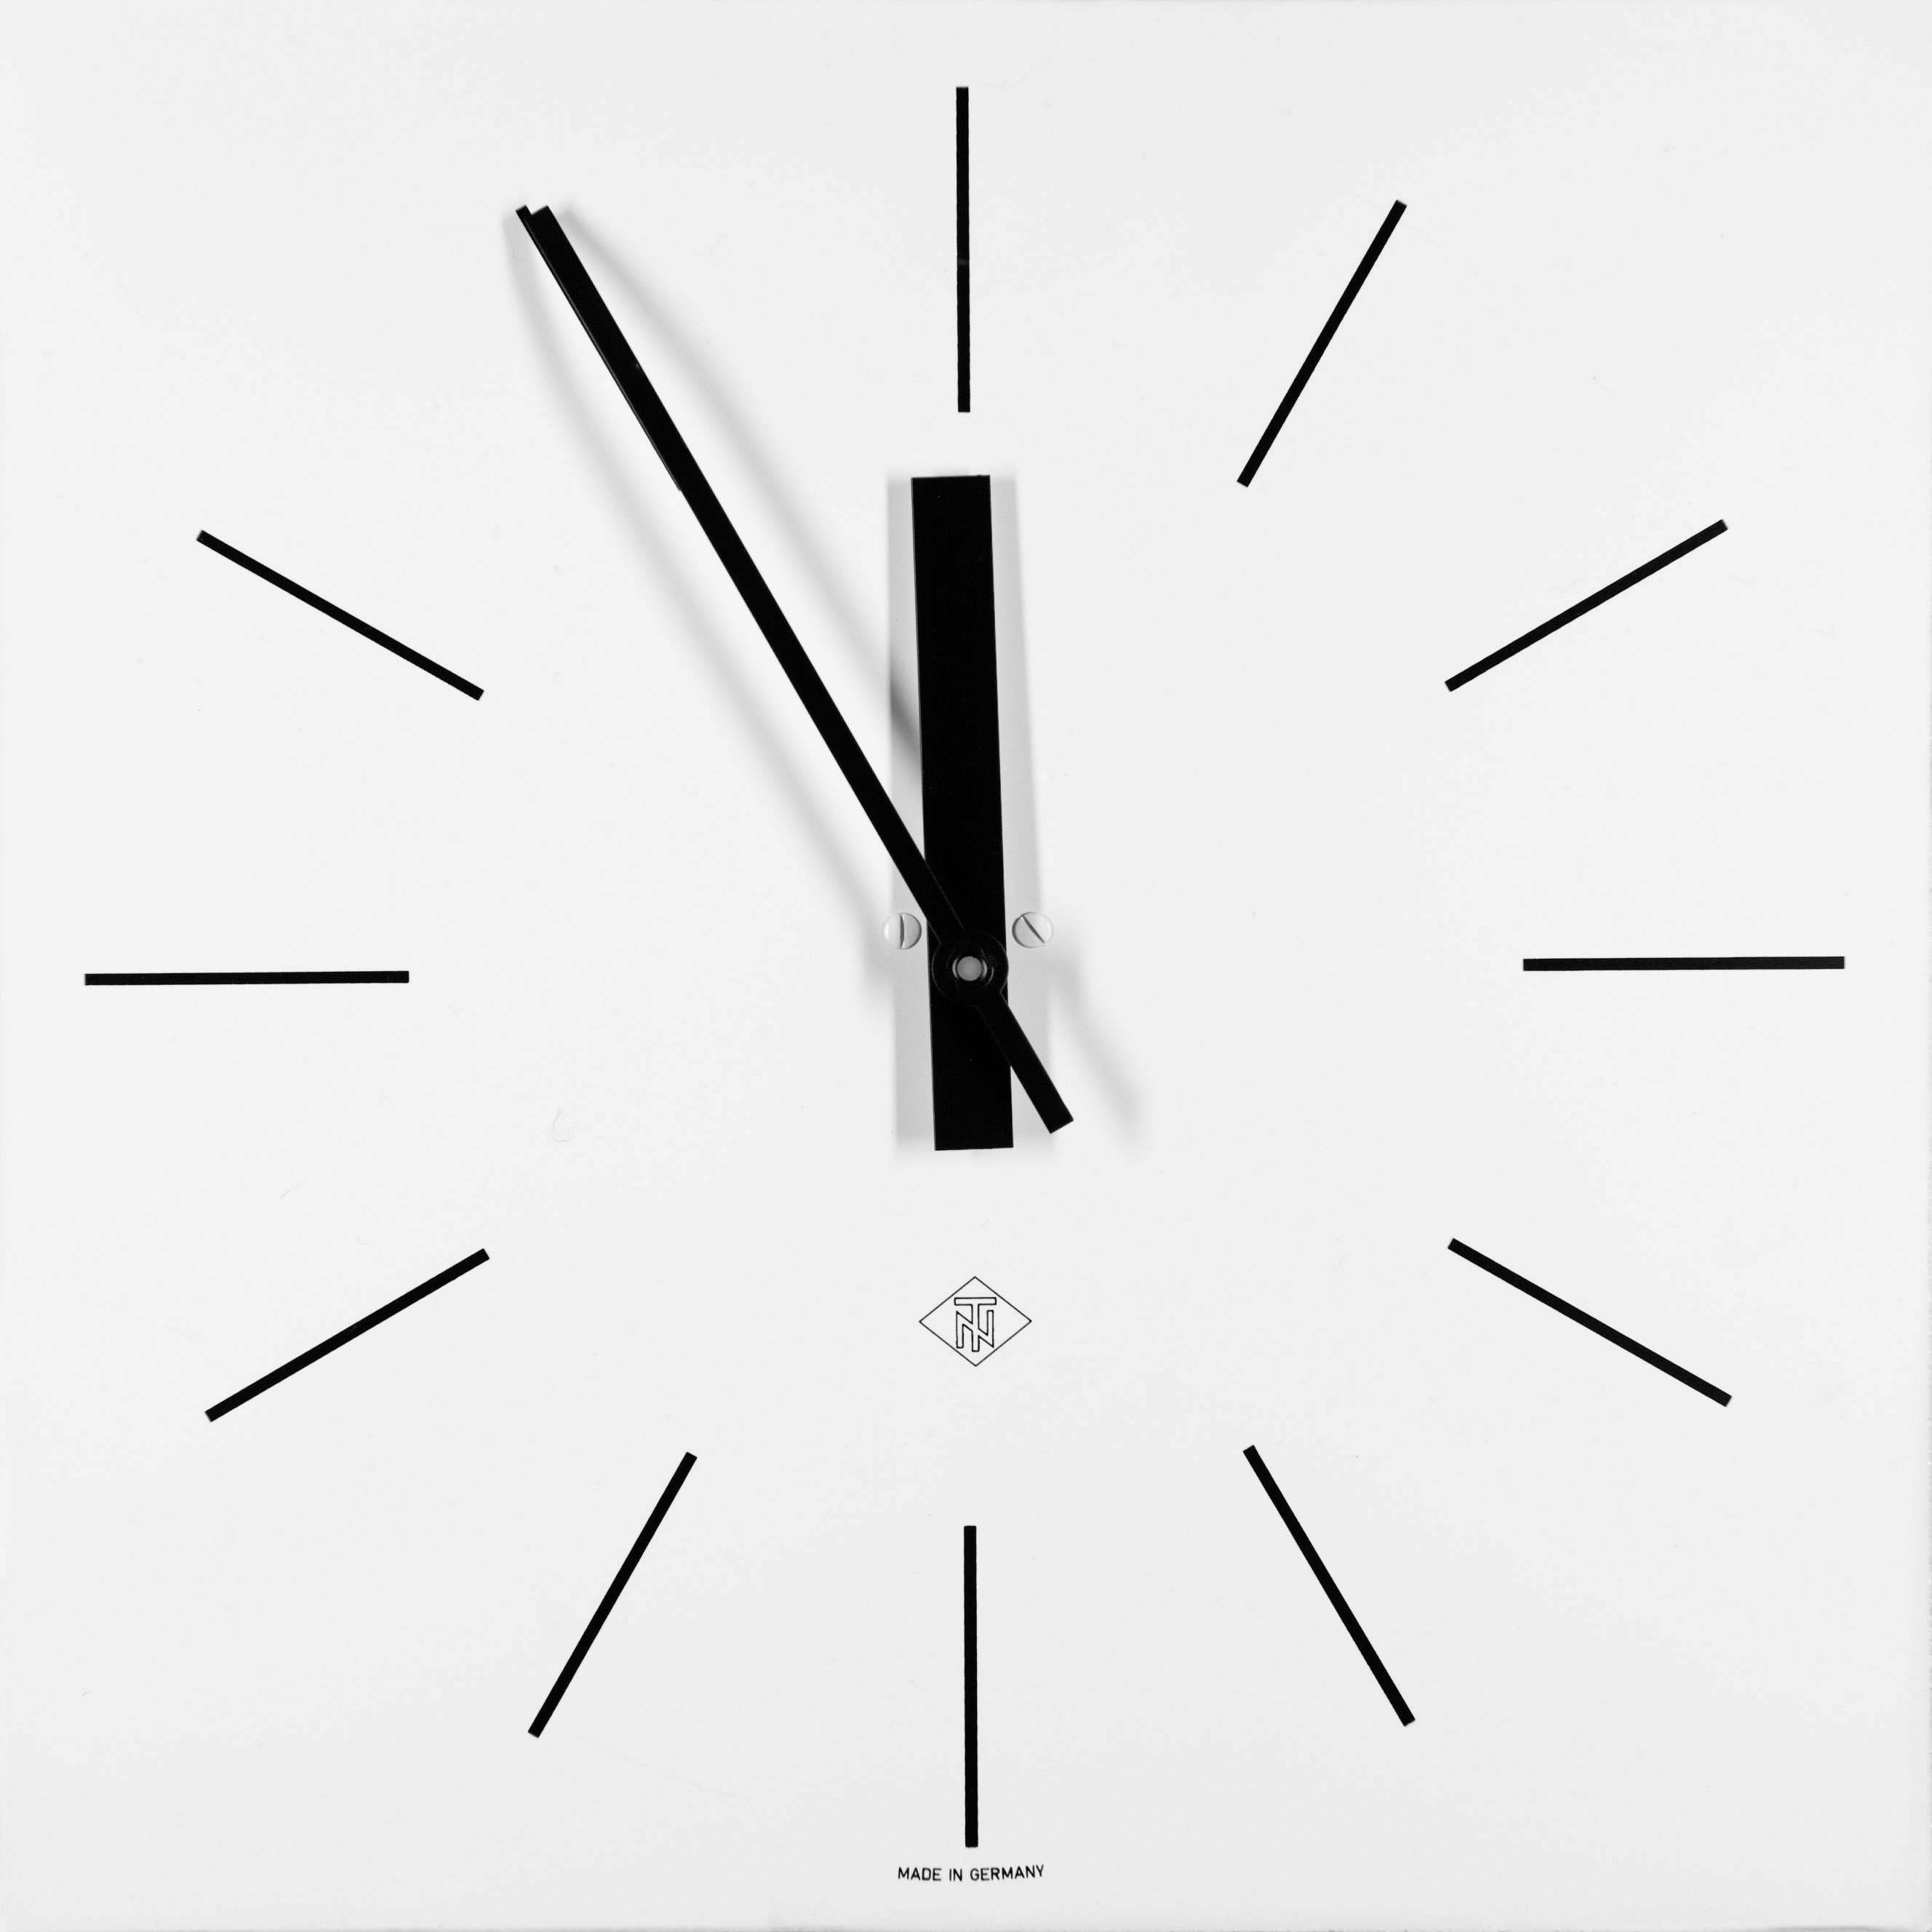 Filetn wall clock hgg wikimedia commons filetn wall clock hgg ccuart Choice Image